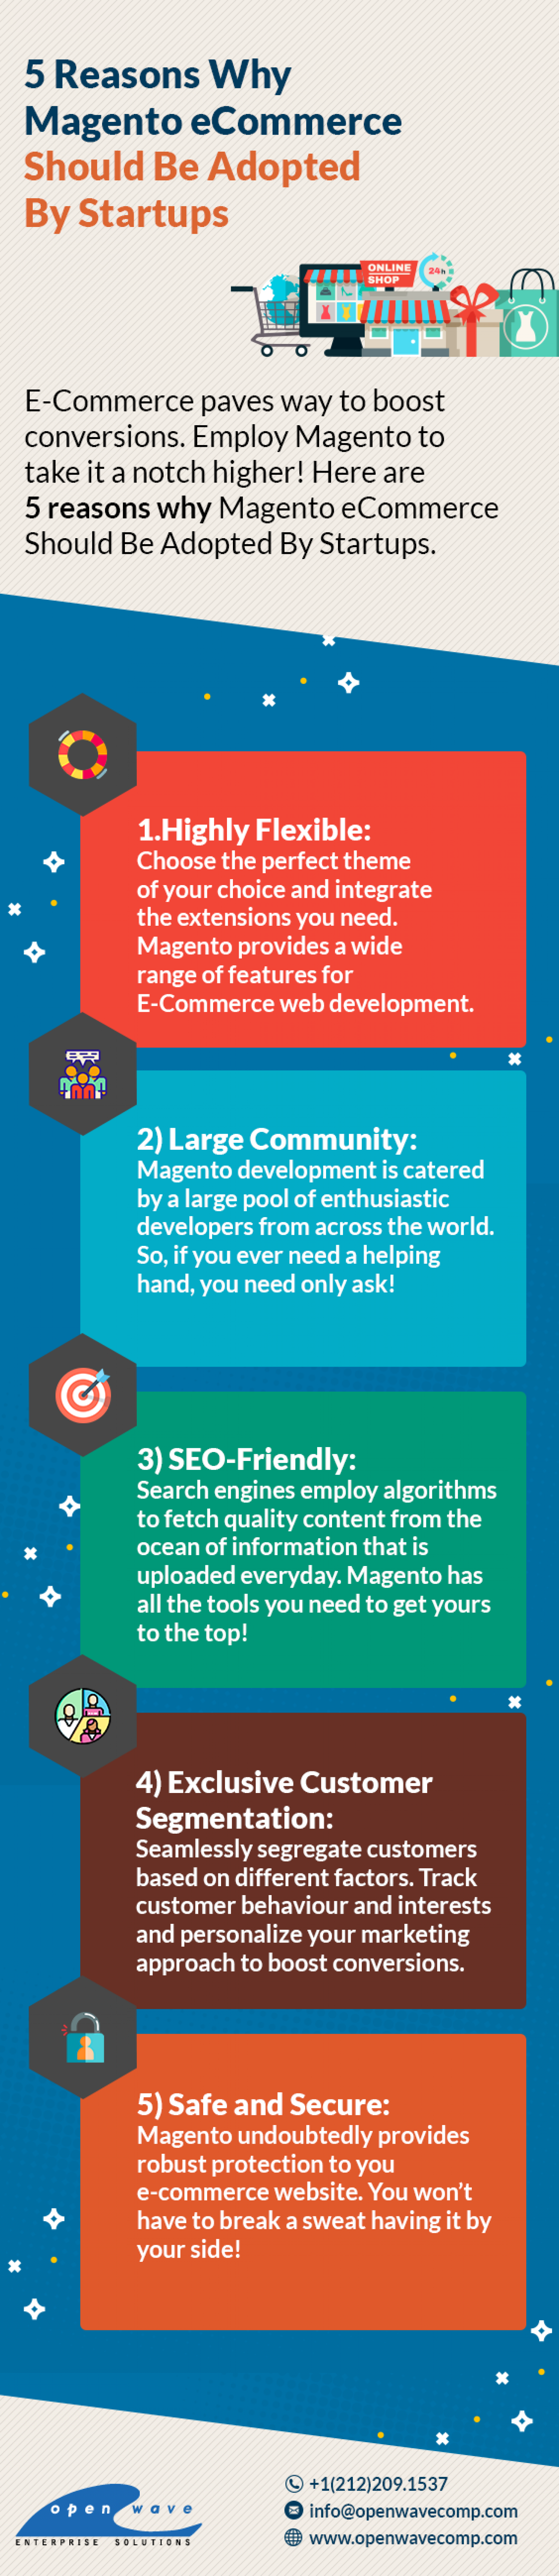 5 Reasons Why Magento eCommerce Should Be Adopted By Startups Infographic